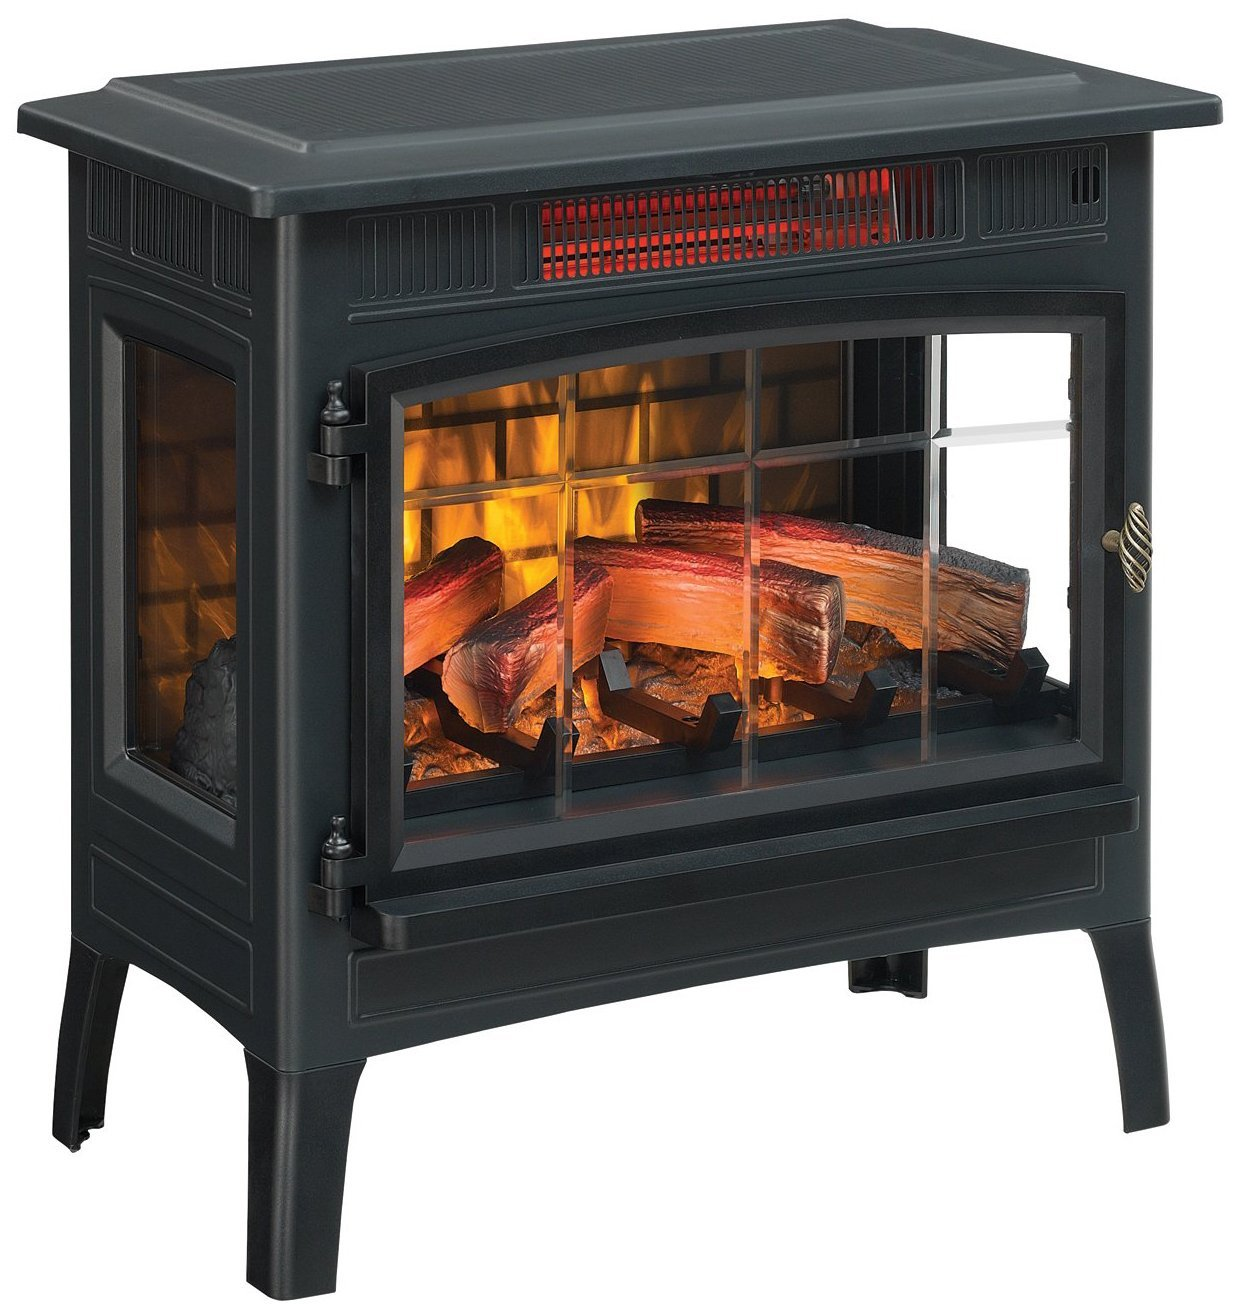 DuraFlame Electric Infrared Quartz Fireplace Stove with 3D Flames Effect Black - Best Electric FirePlaces